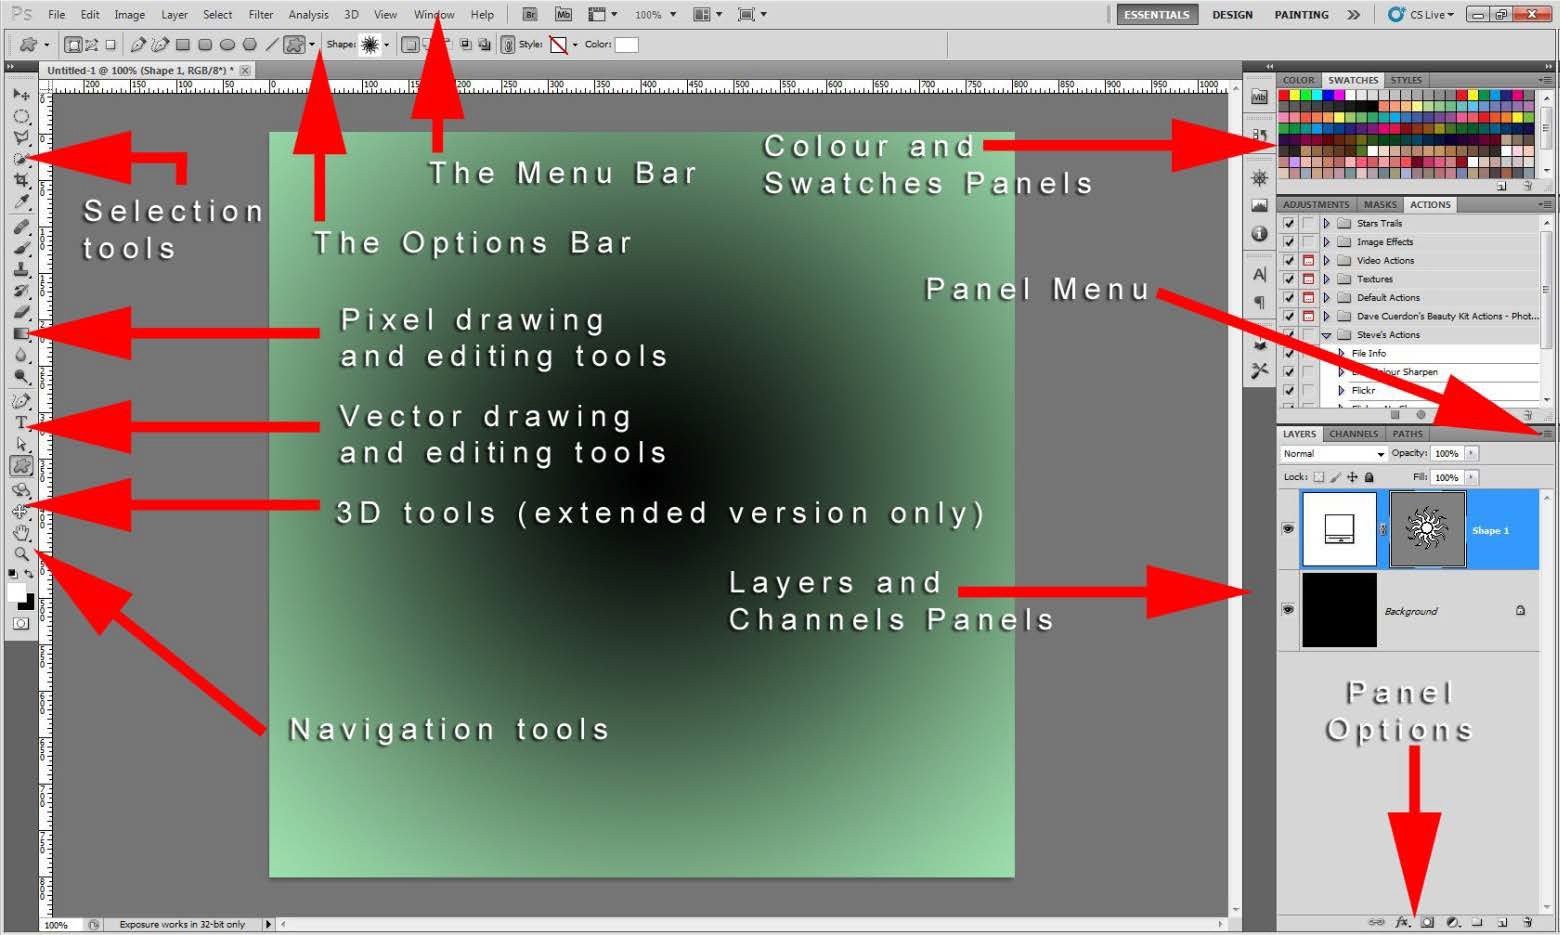 the default Adobe Photoshop workspace layout